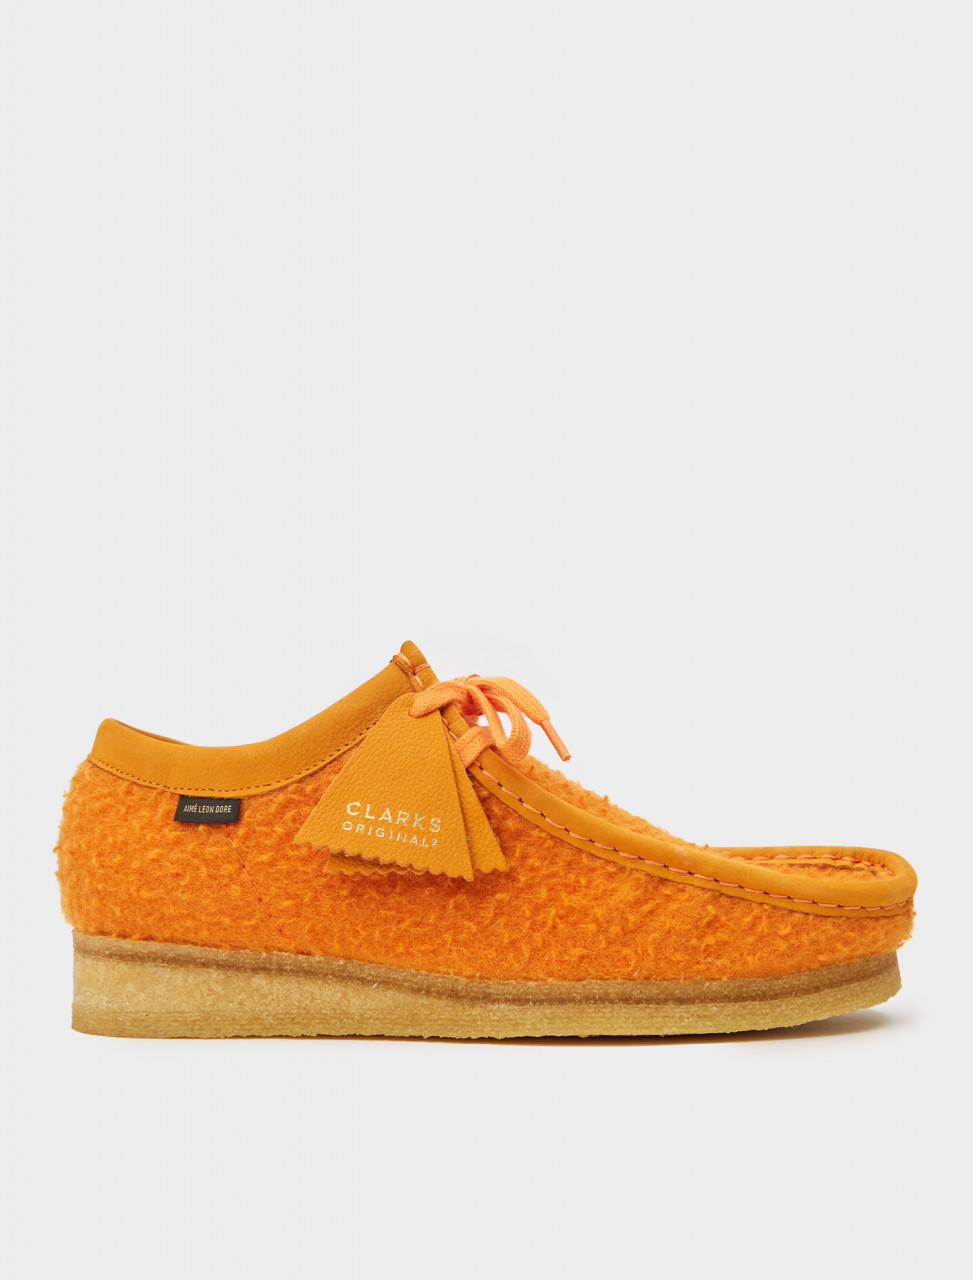 334-26160879 CLARKS AIME LEON DORE WALLABEE ORANGE WOOL